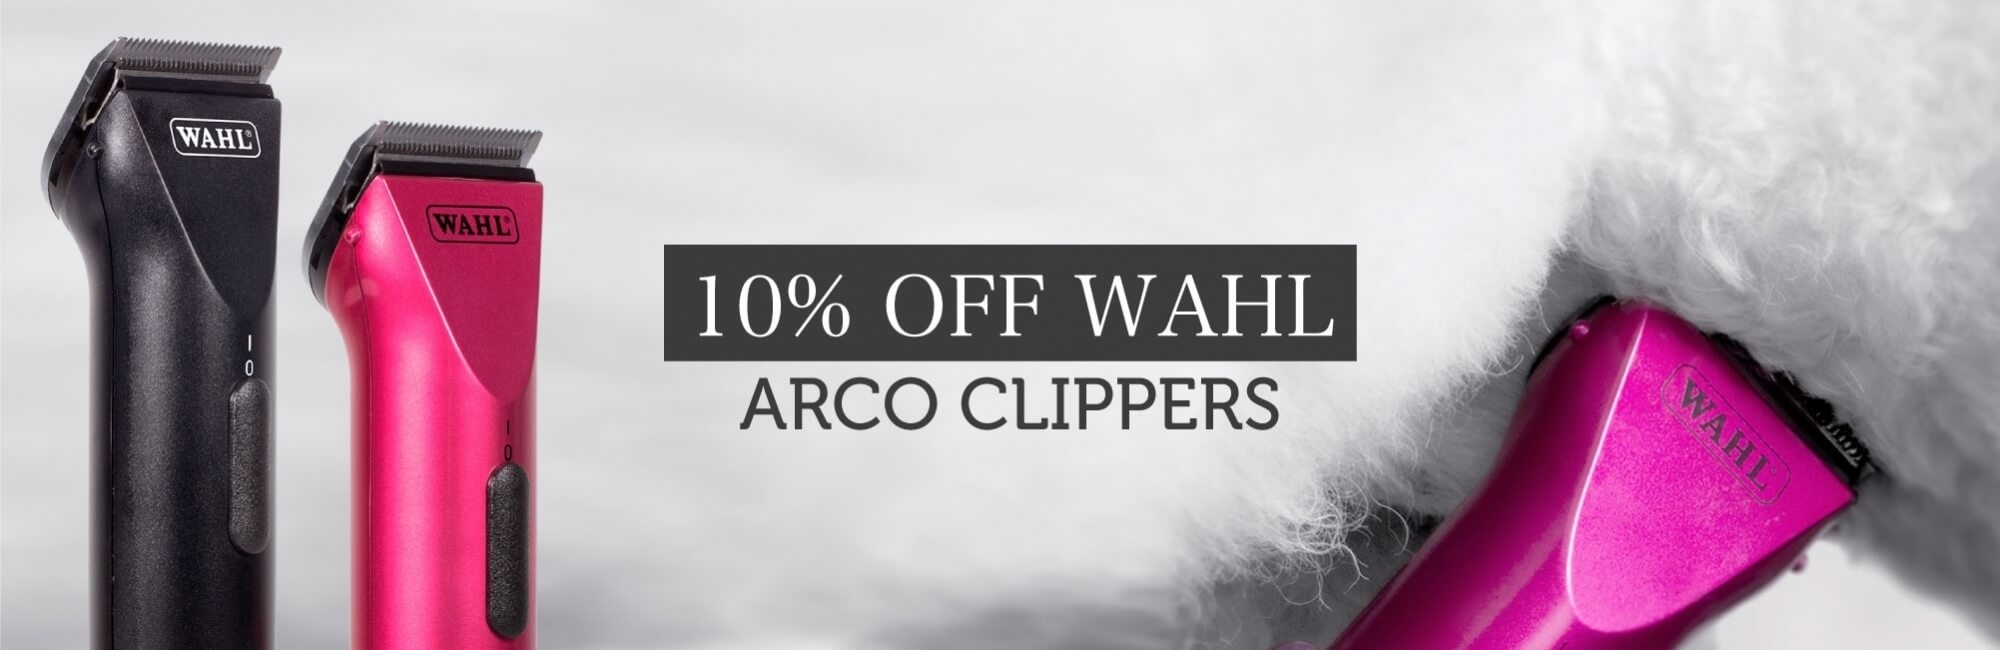 10% Off Wahl Arco Clippers